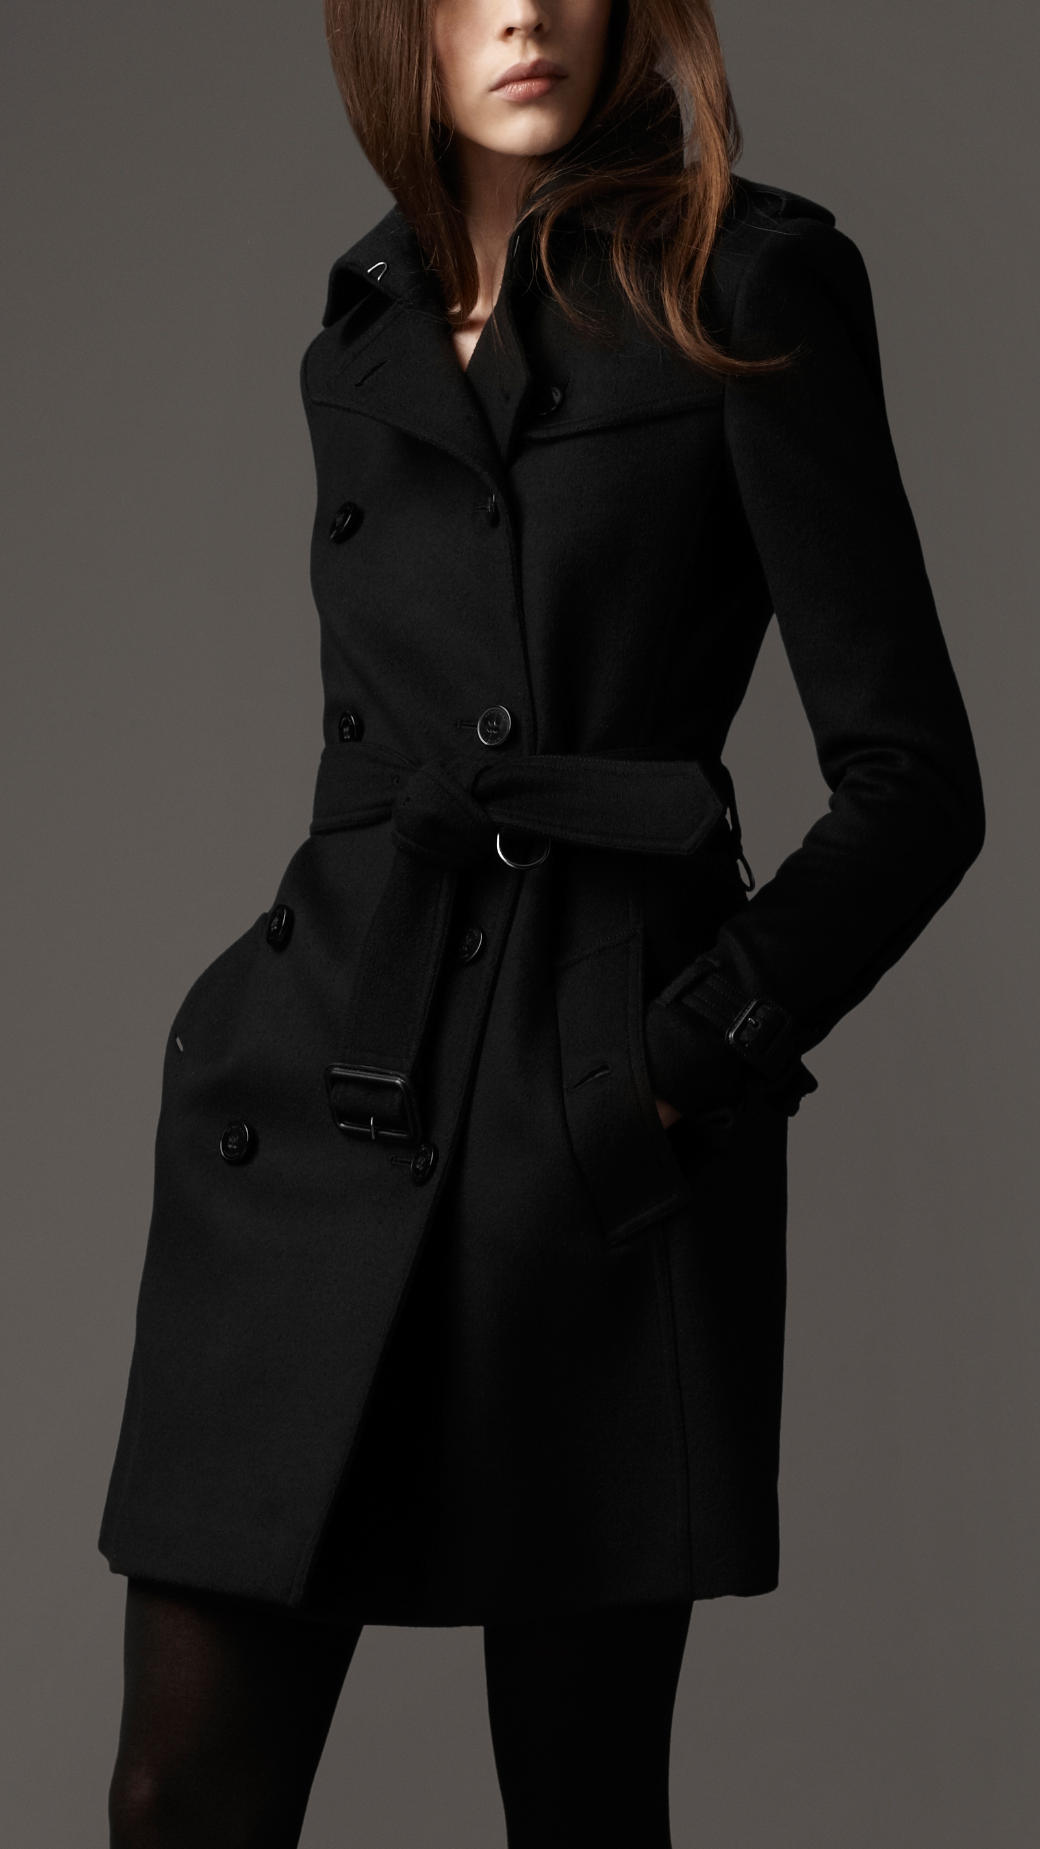 Burberry Wool Cashmere Trench Coat in Black | Lyst